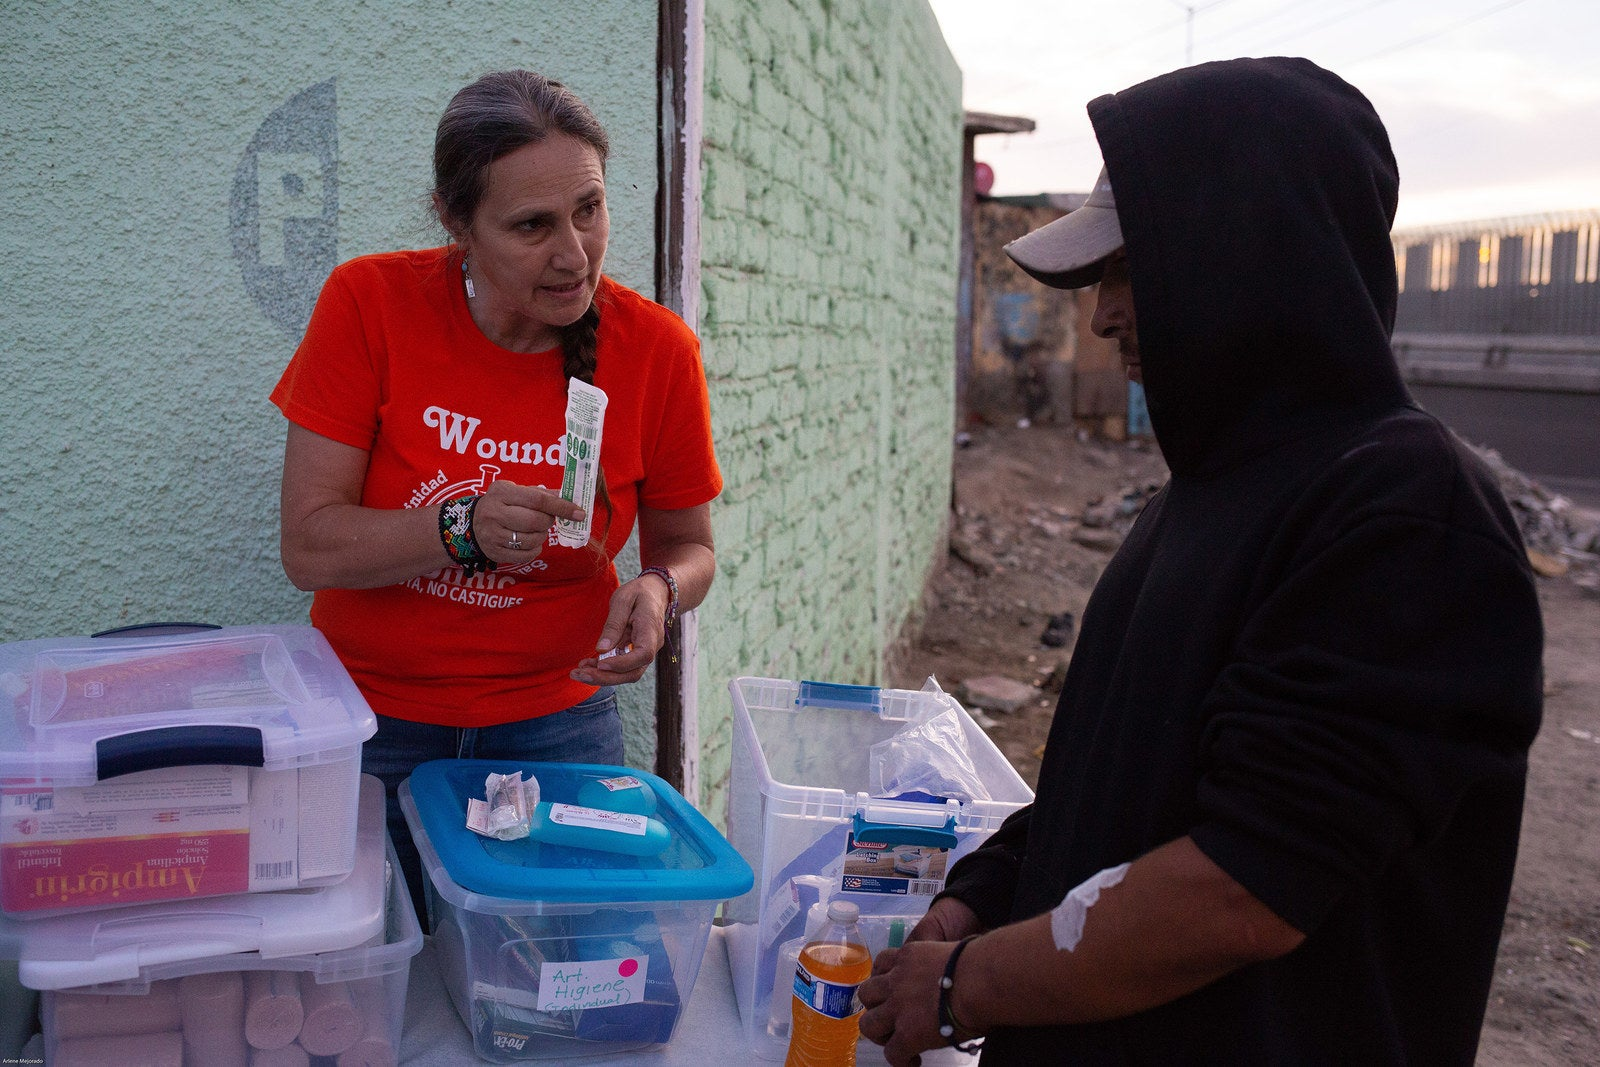 Dr. Patricia Gonzalez-Zuniga gives a clinic pack with clean syringes to a patient.